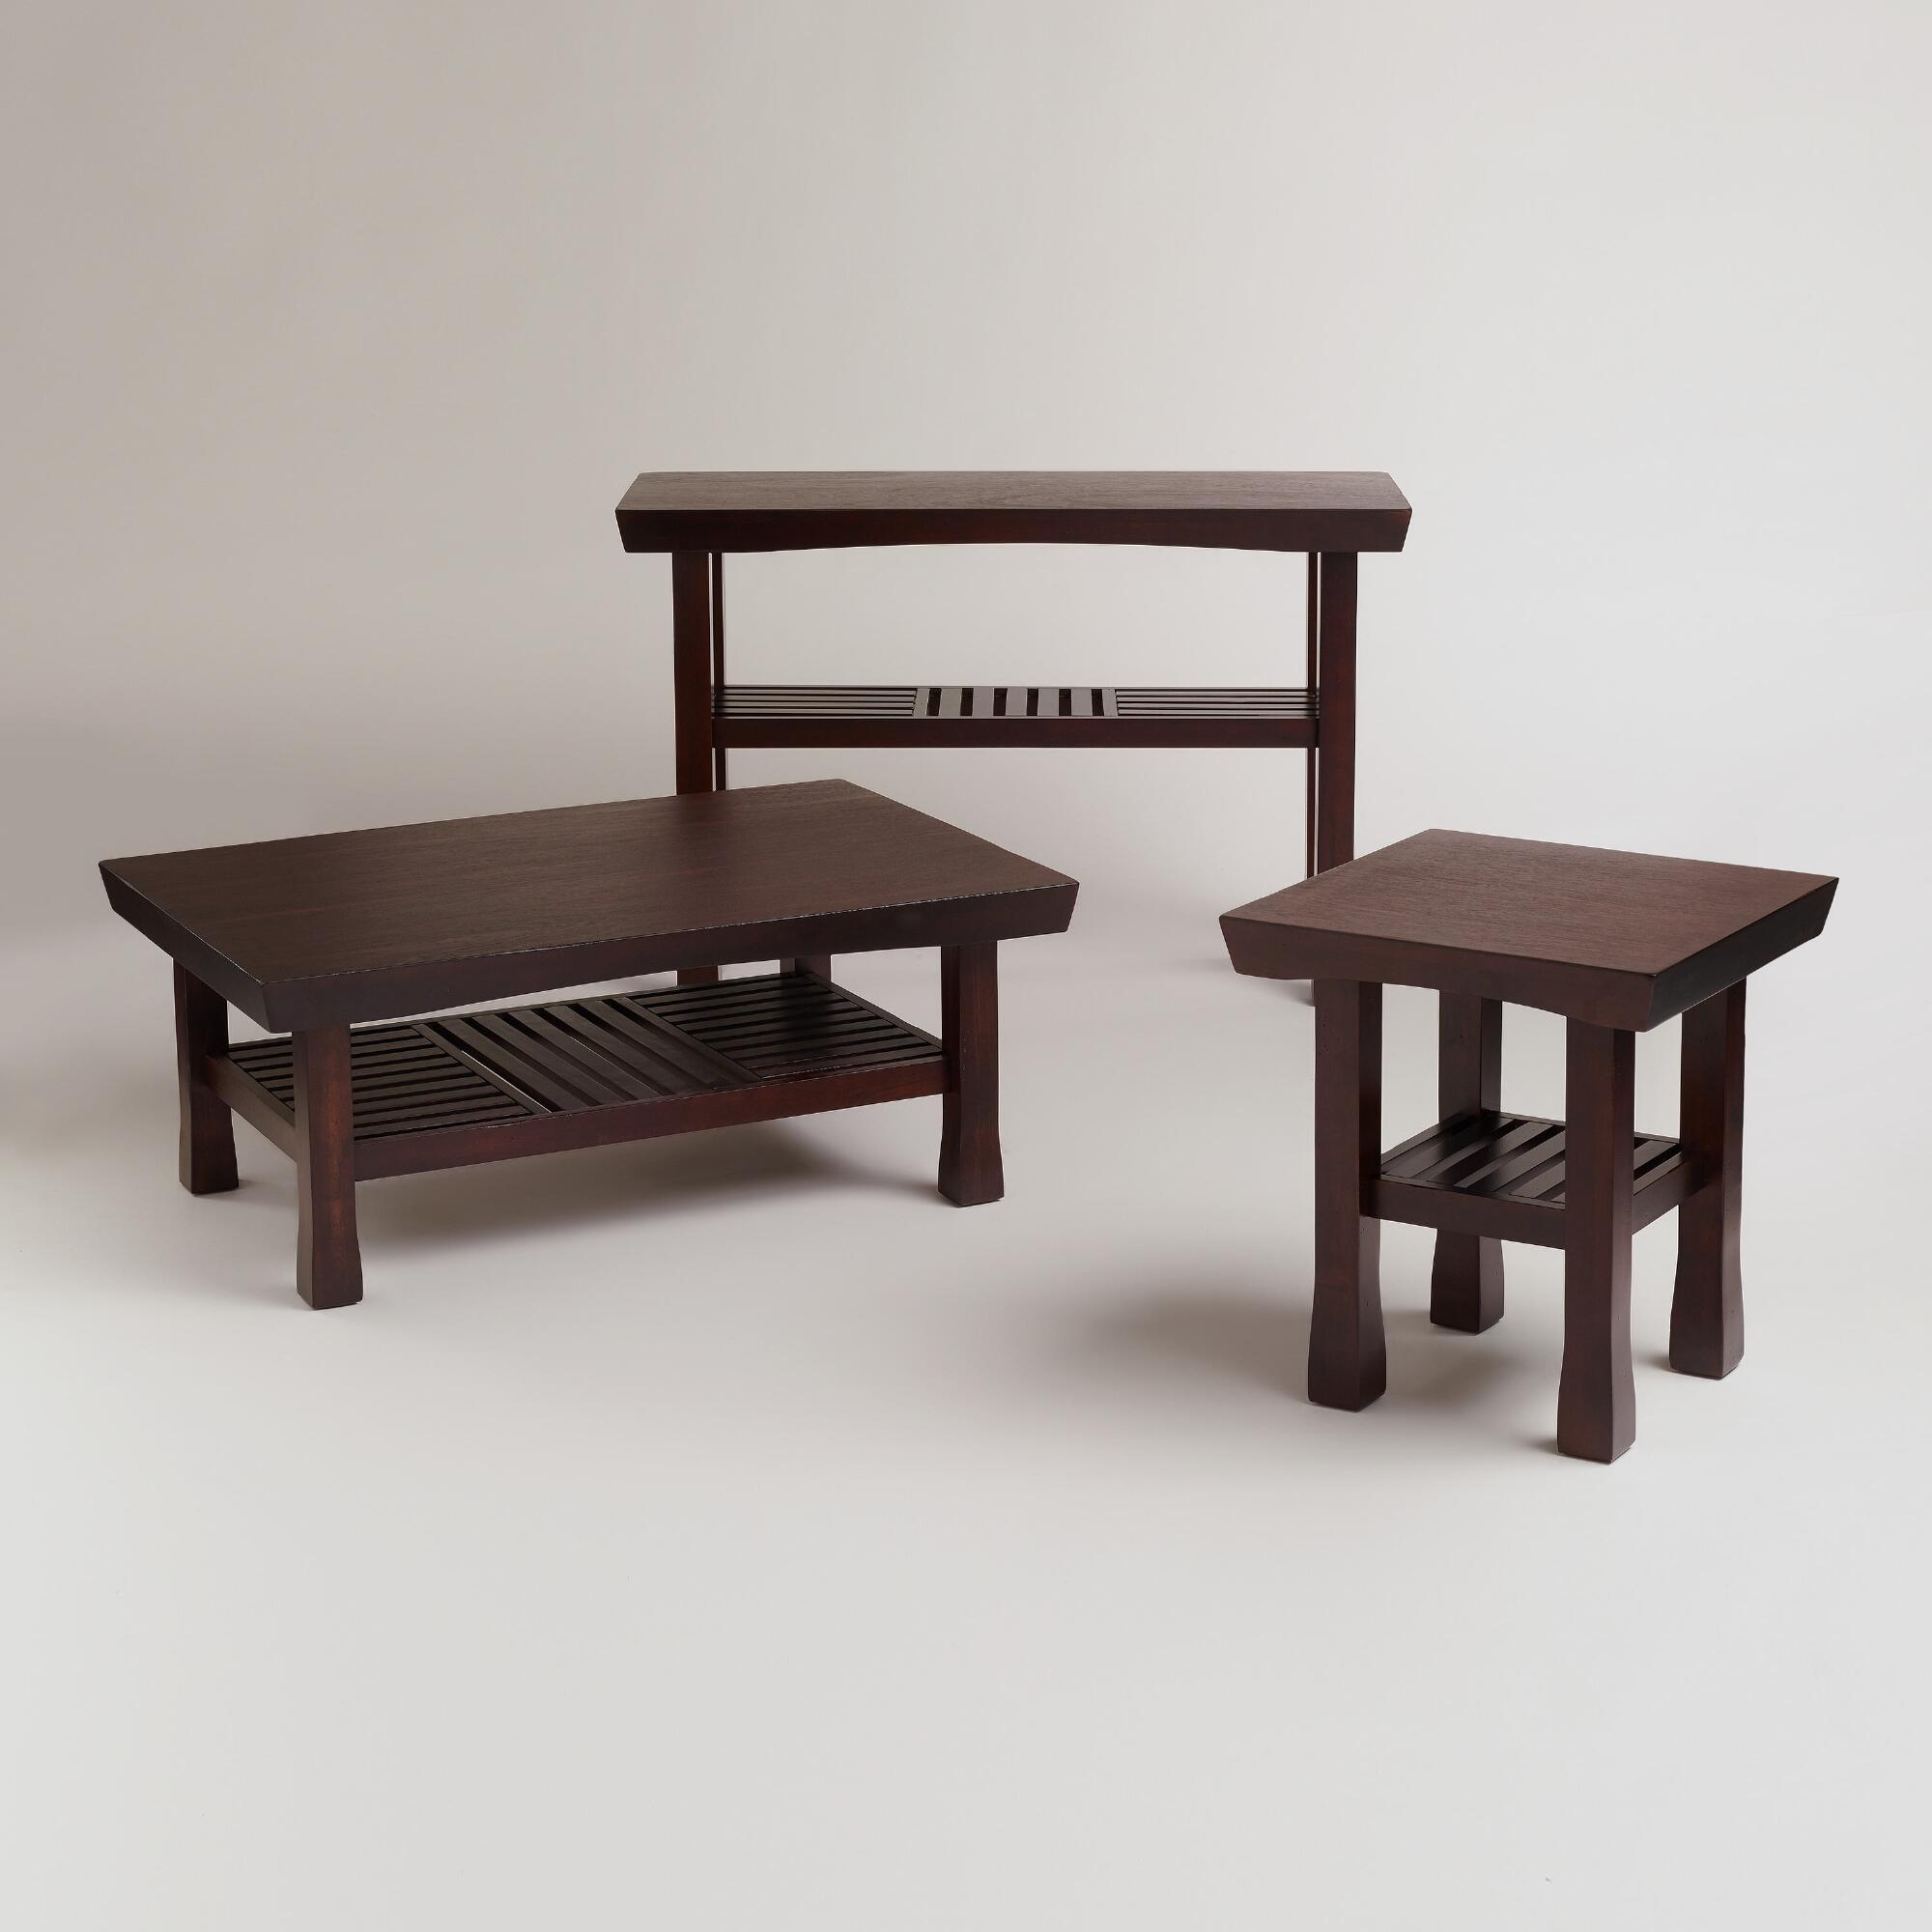 Hako furniture collection world market for Furniture market